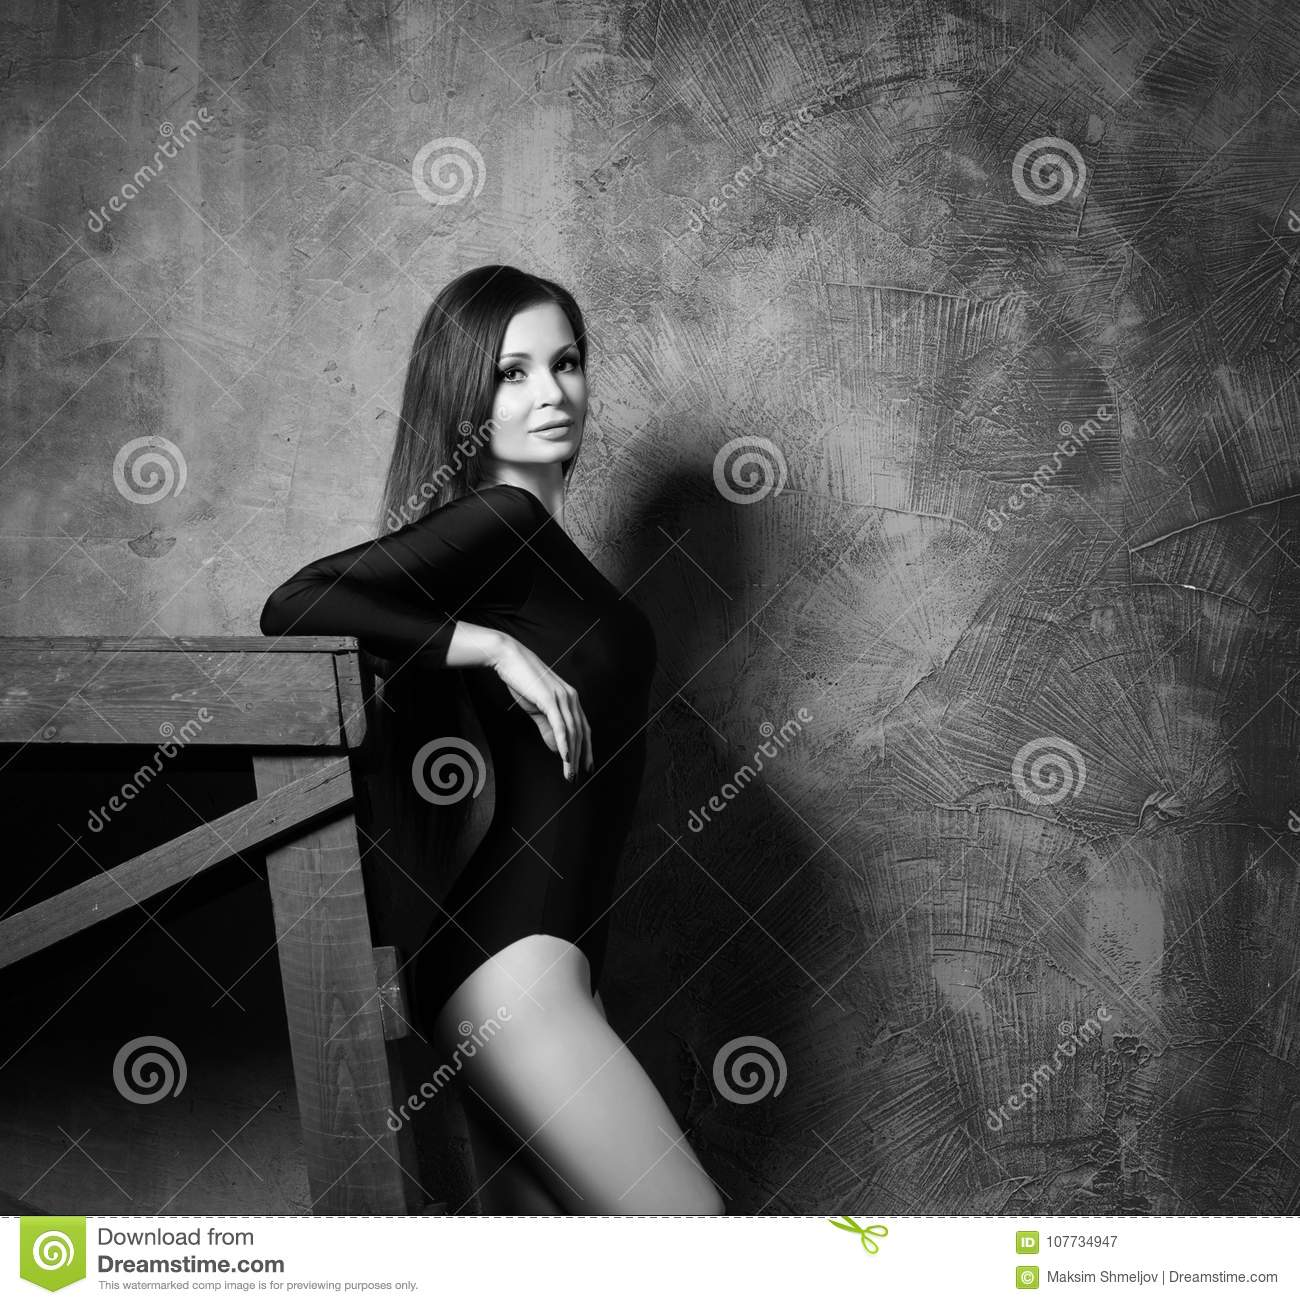 Black Fashion Models Poses: Young And Beautiful Fashion Model Is Posing. Fit And